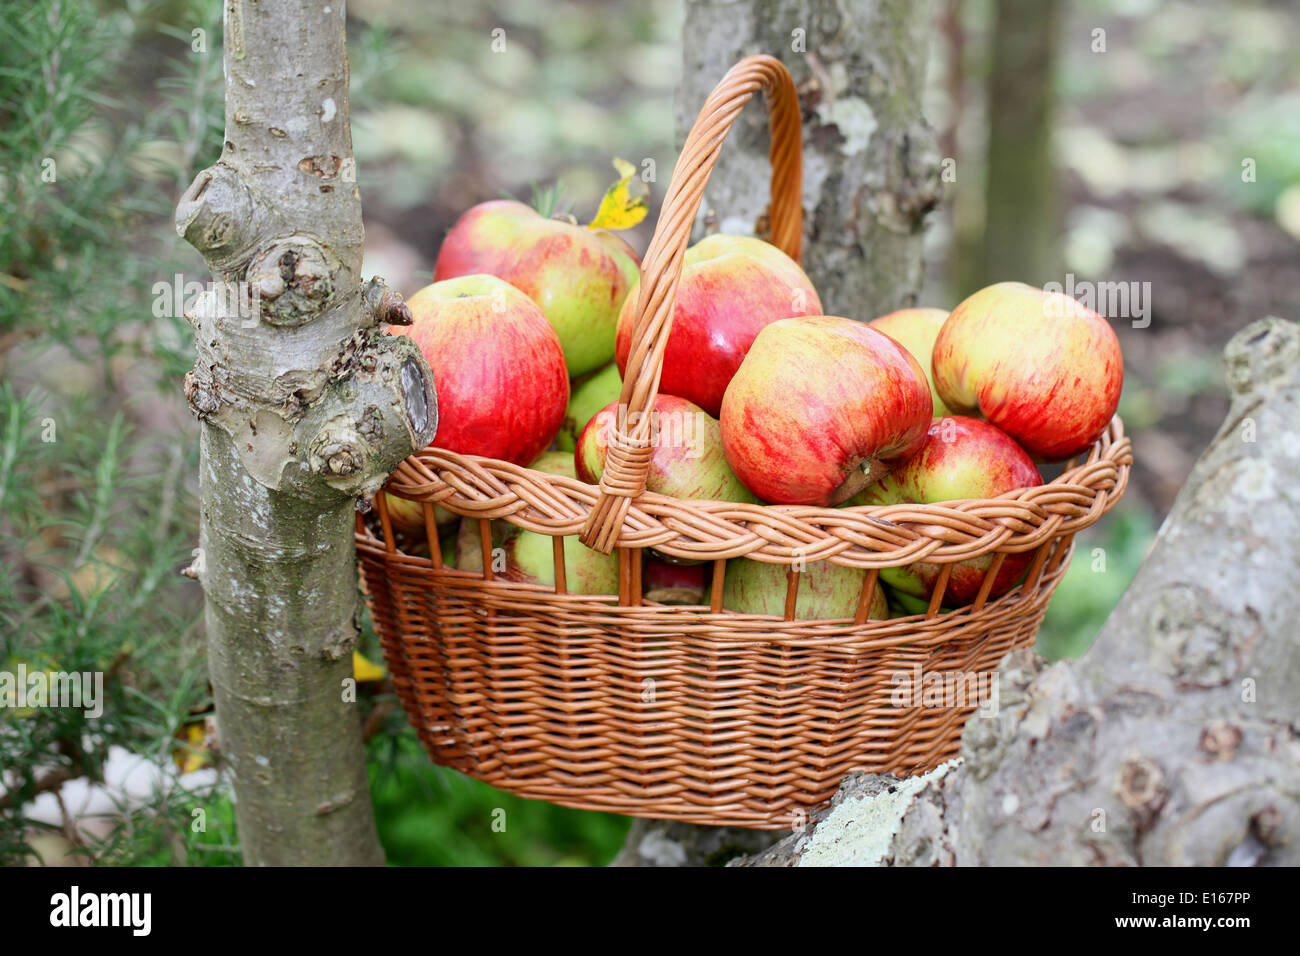 Crisp and juicy apples freshly harvested in a wicker basket - Stock Image